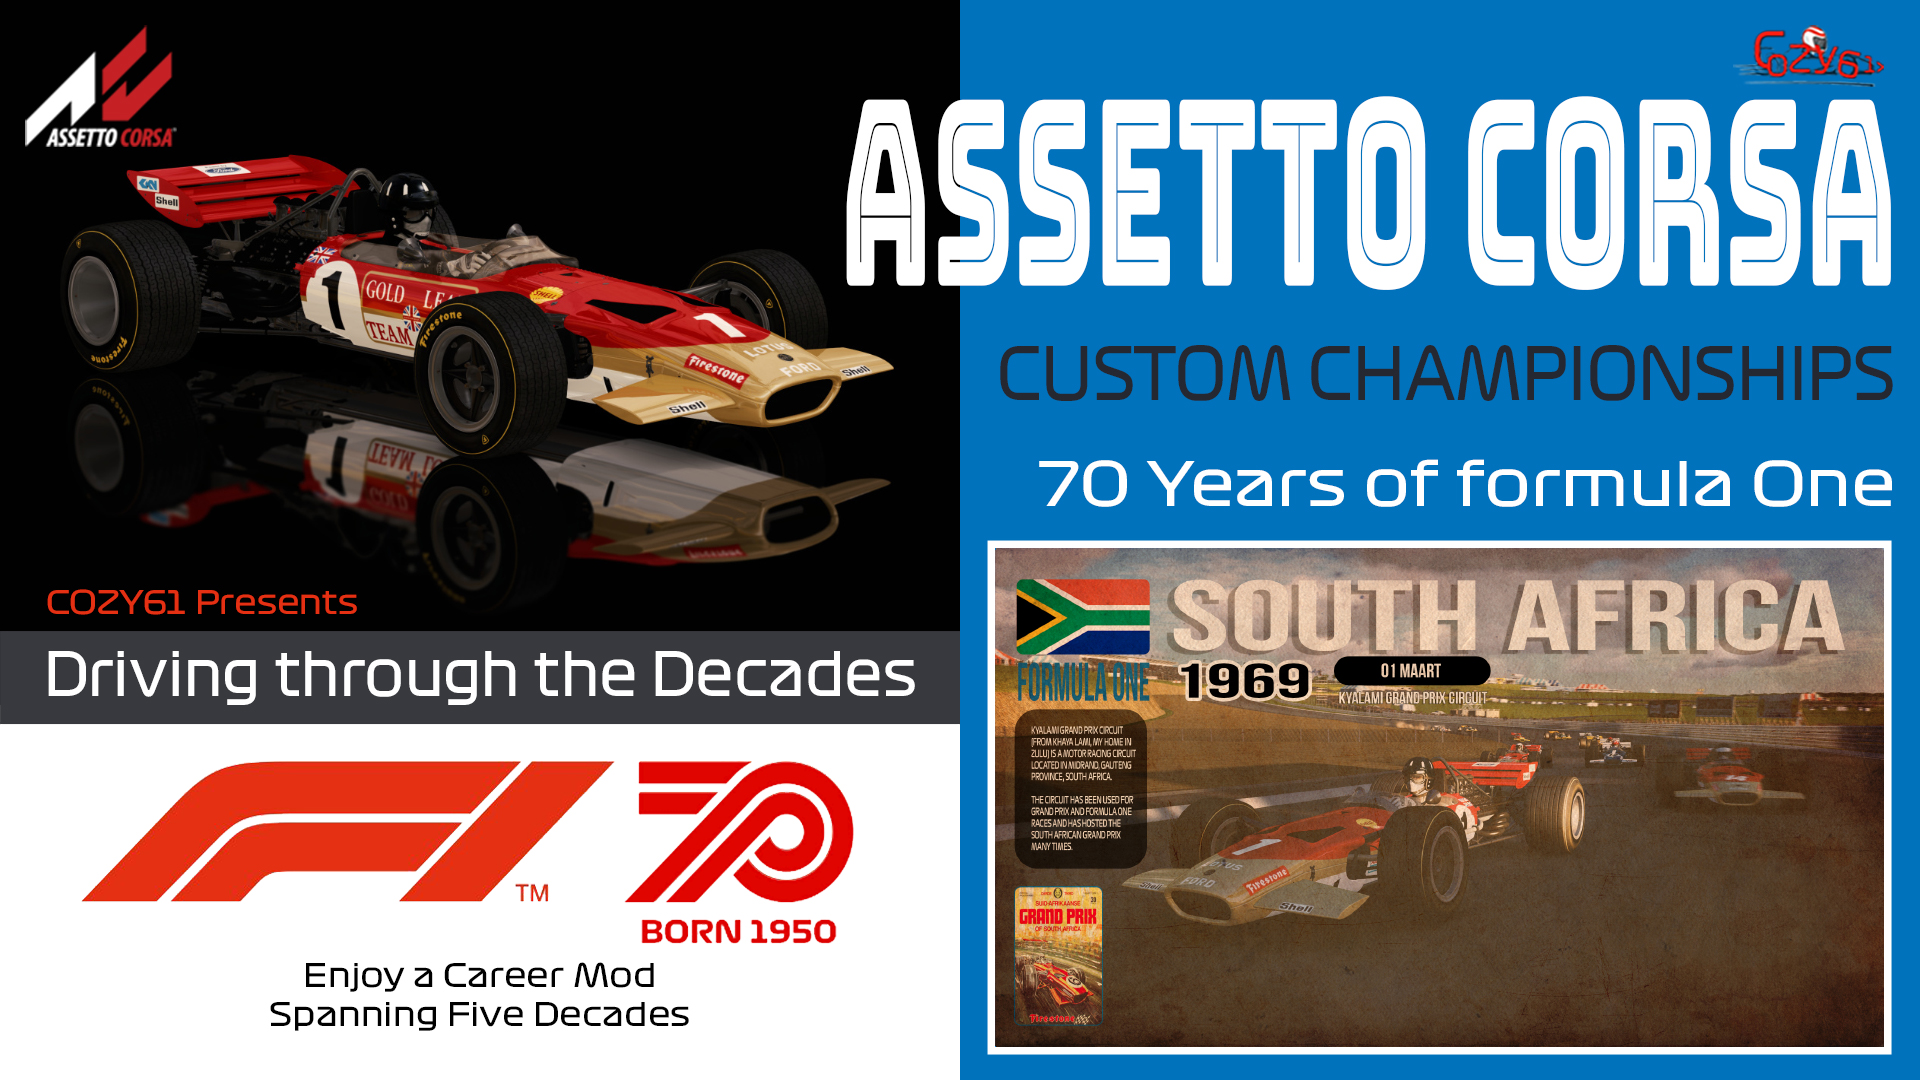 YT 70yearsF1_1969_ Background_1080p.jpg